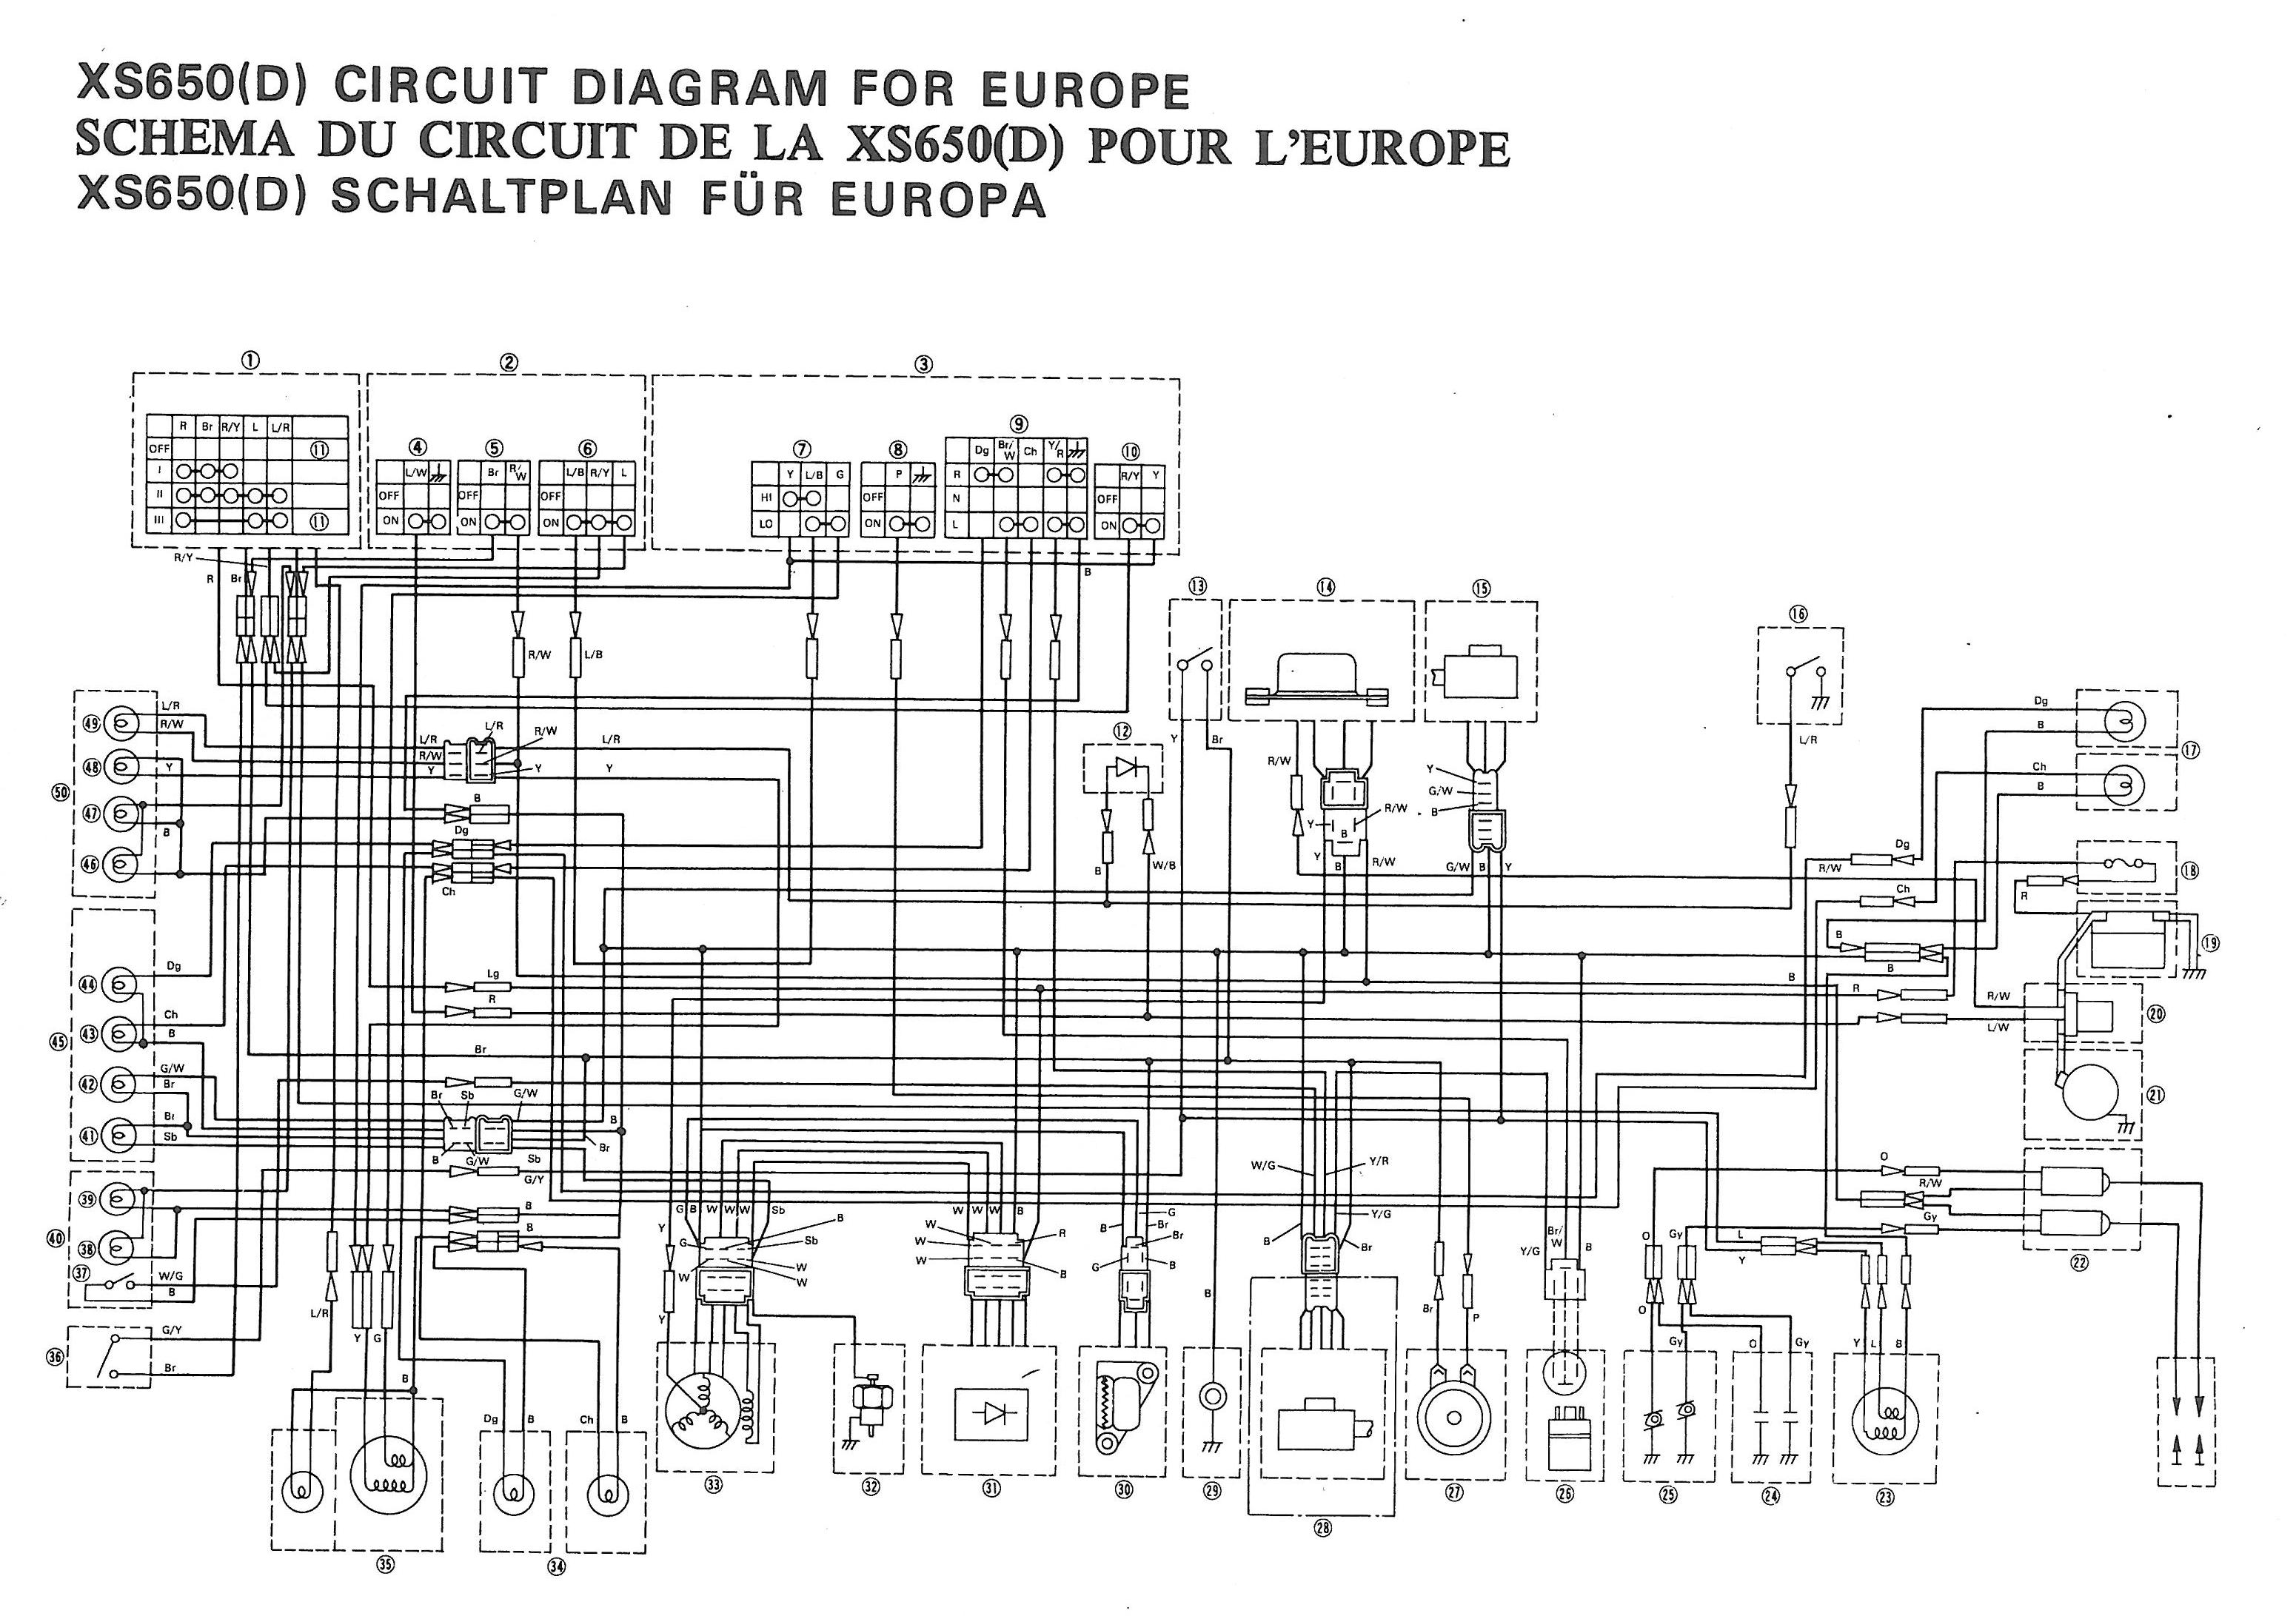 77 xs d wiring europe xs650 77 xs d wiring diagram thexscafe 1975 xs650 wiring diagram at n-0.co